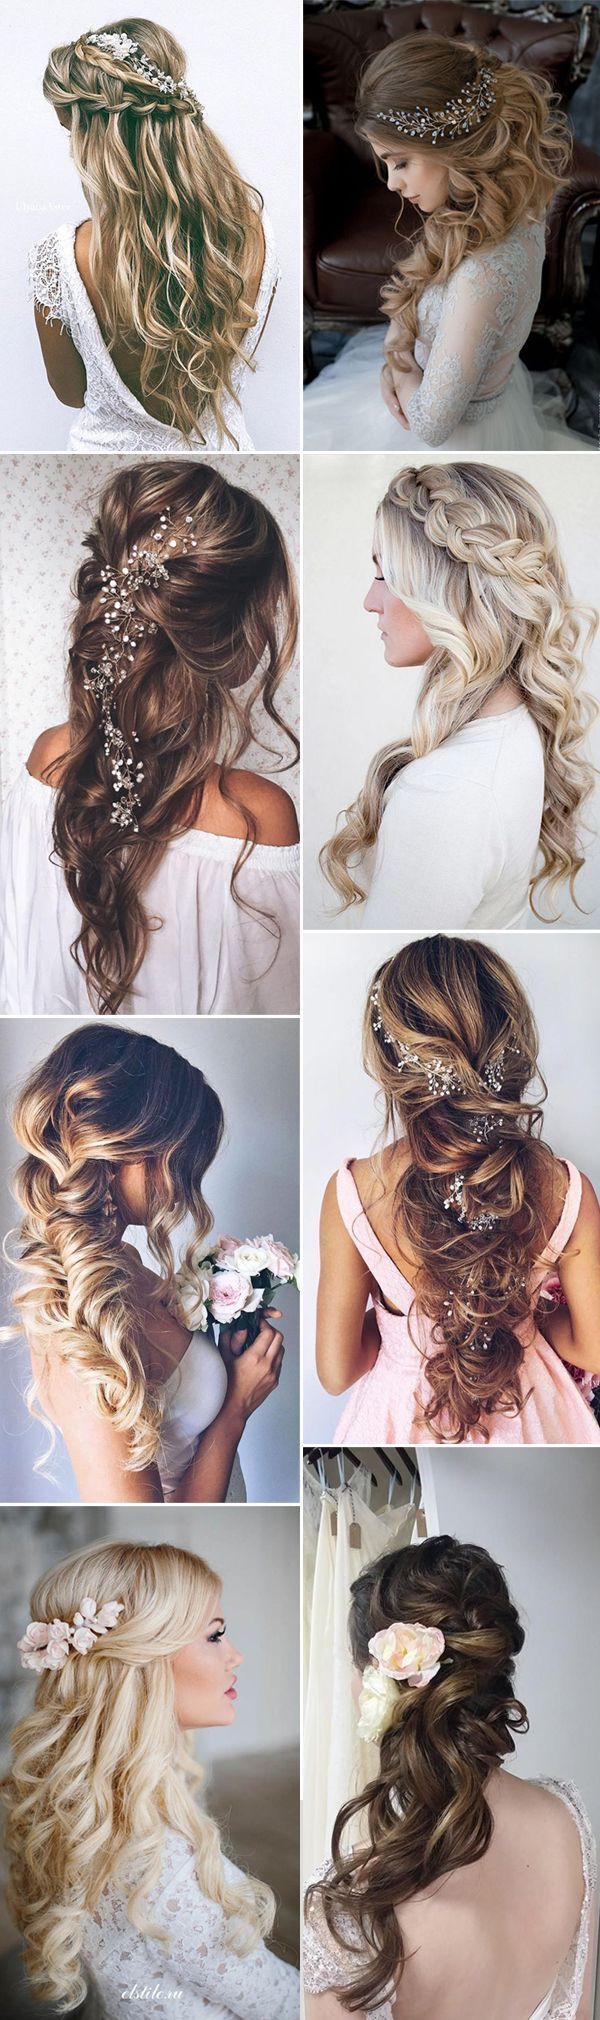 new wedding hairstyles for brides and flower girls hairstyles